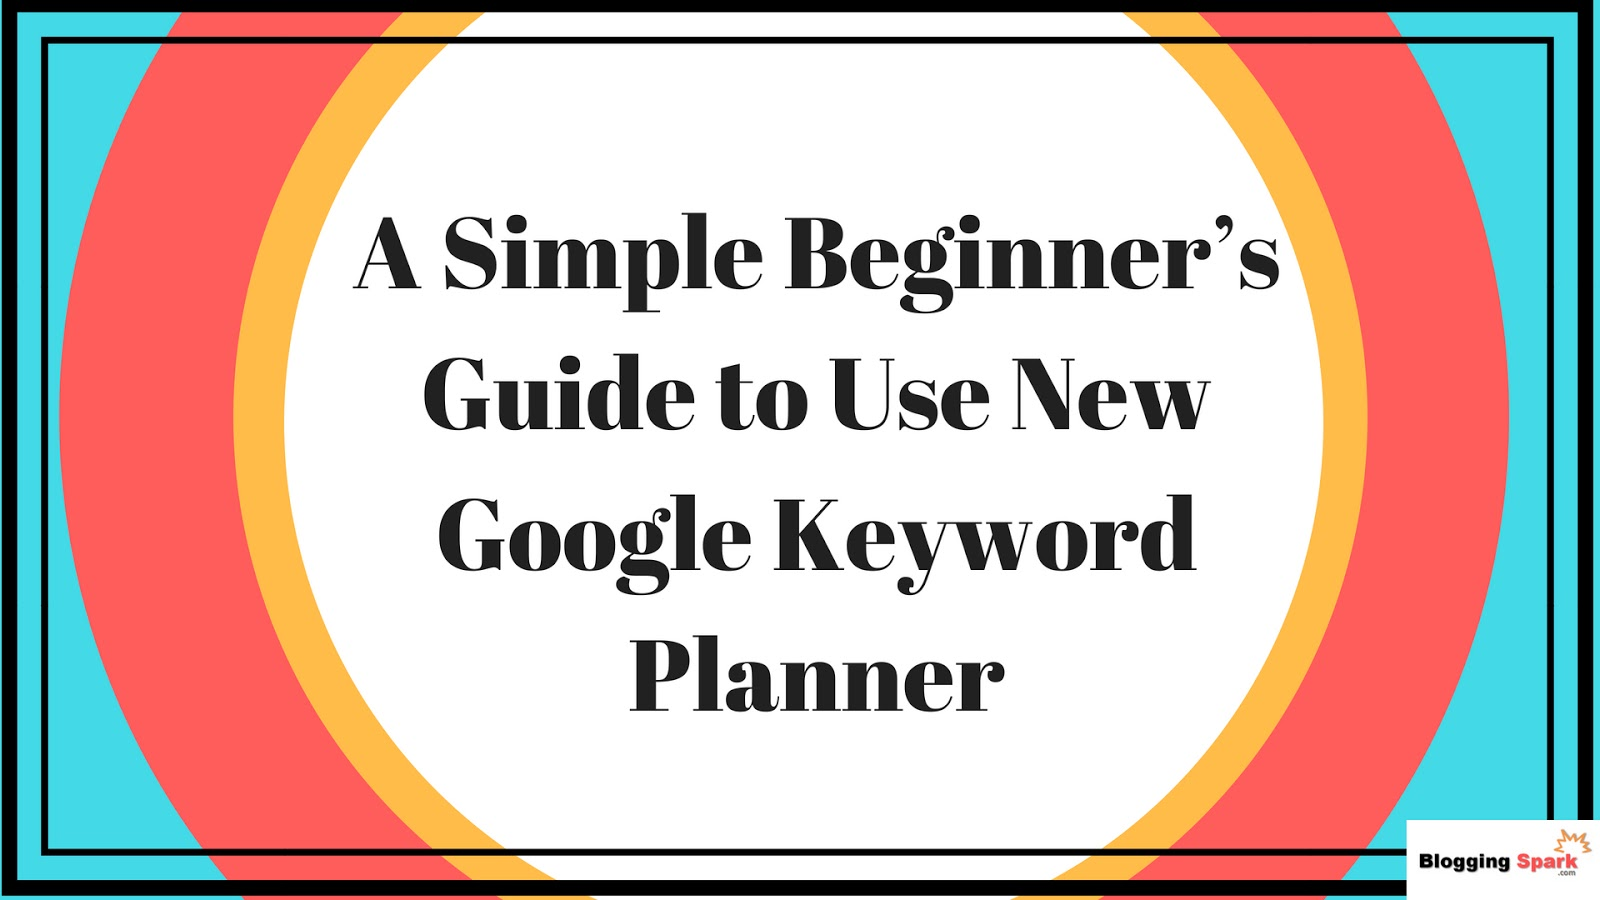 google keyword planner guide, how to use google keyword planner